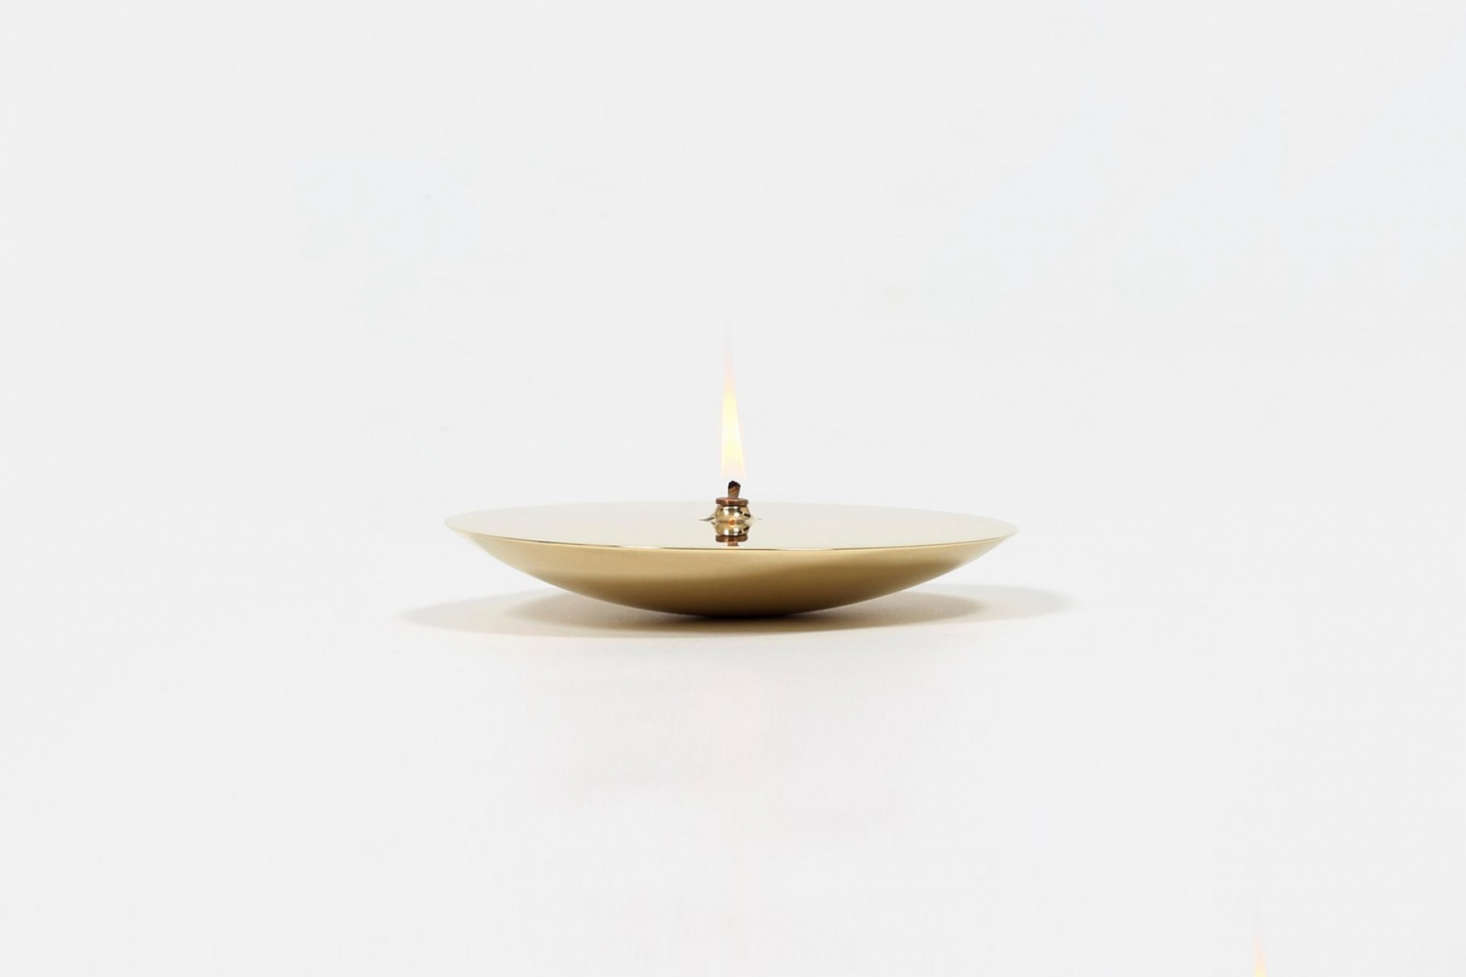 The oil lamp is having a moment. For a longer-lasting alternative to wax candles, designers such as Ilse Crawford (her new Holocene Oil Lamp is shown) are designing modern versions powered by oil. See more at 5 Favorites: Scandinavian-Style Oil Lanterns for Long Winter Nights.